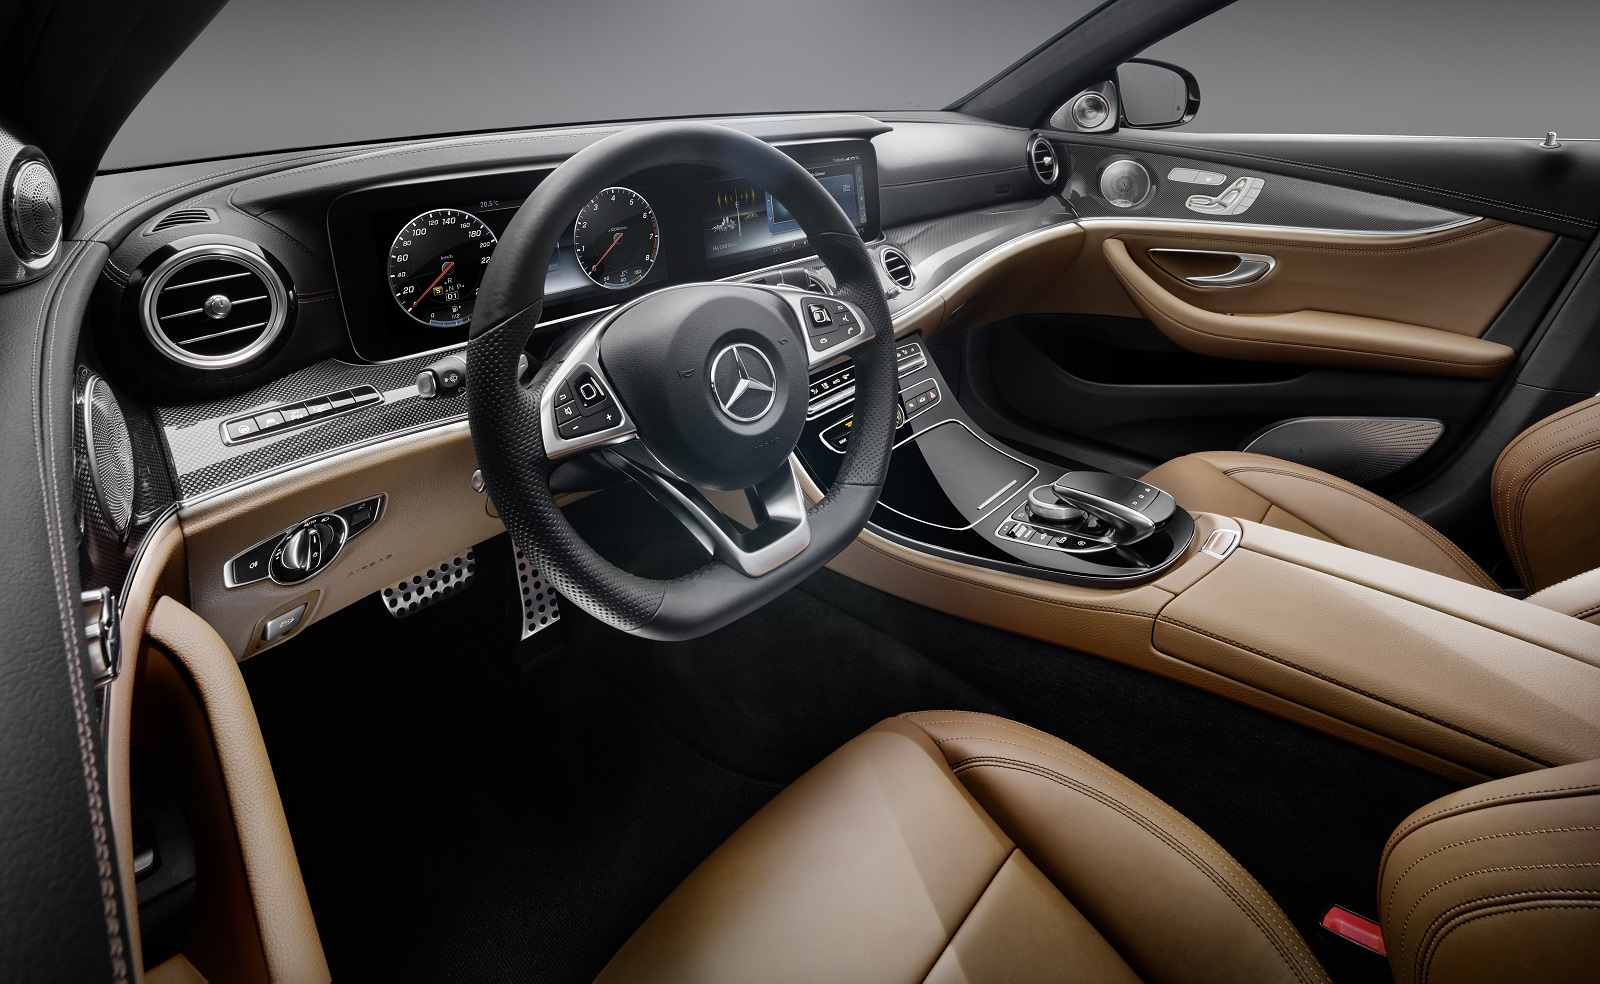 2017 mercedes benz e class interior revealed all glass for Inside mercedes benz